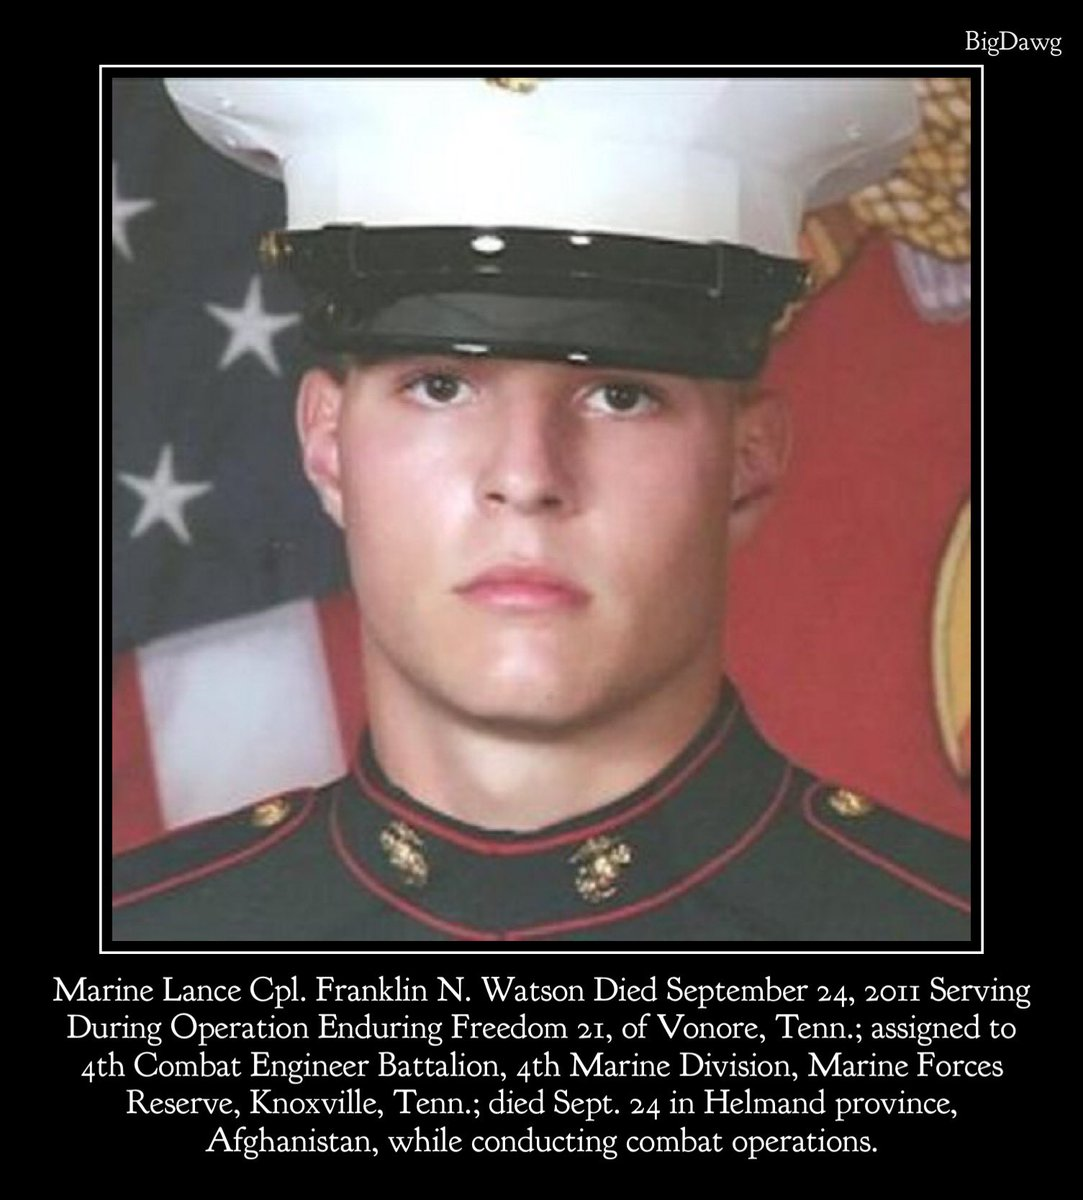 """""""They Say no man is truly Dead until he is Forgotten, so Today I say your name so you are not."""" #nooneleftbehind #nooneforgotten #thepriceoffreedom #rememberthefallen #resteasywarrior #goldstarfamilies #thankyouforyourserviceandsacrifice https://t.co/WnGwpQQPFg"""